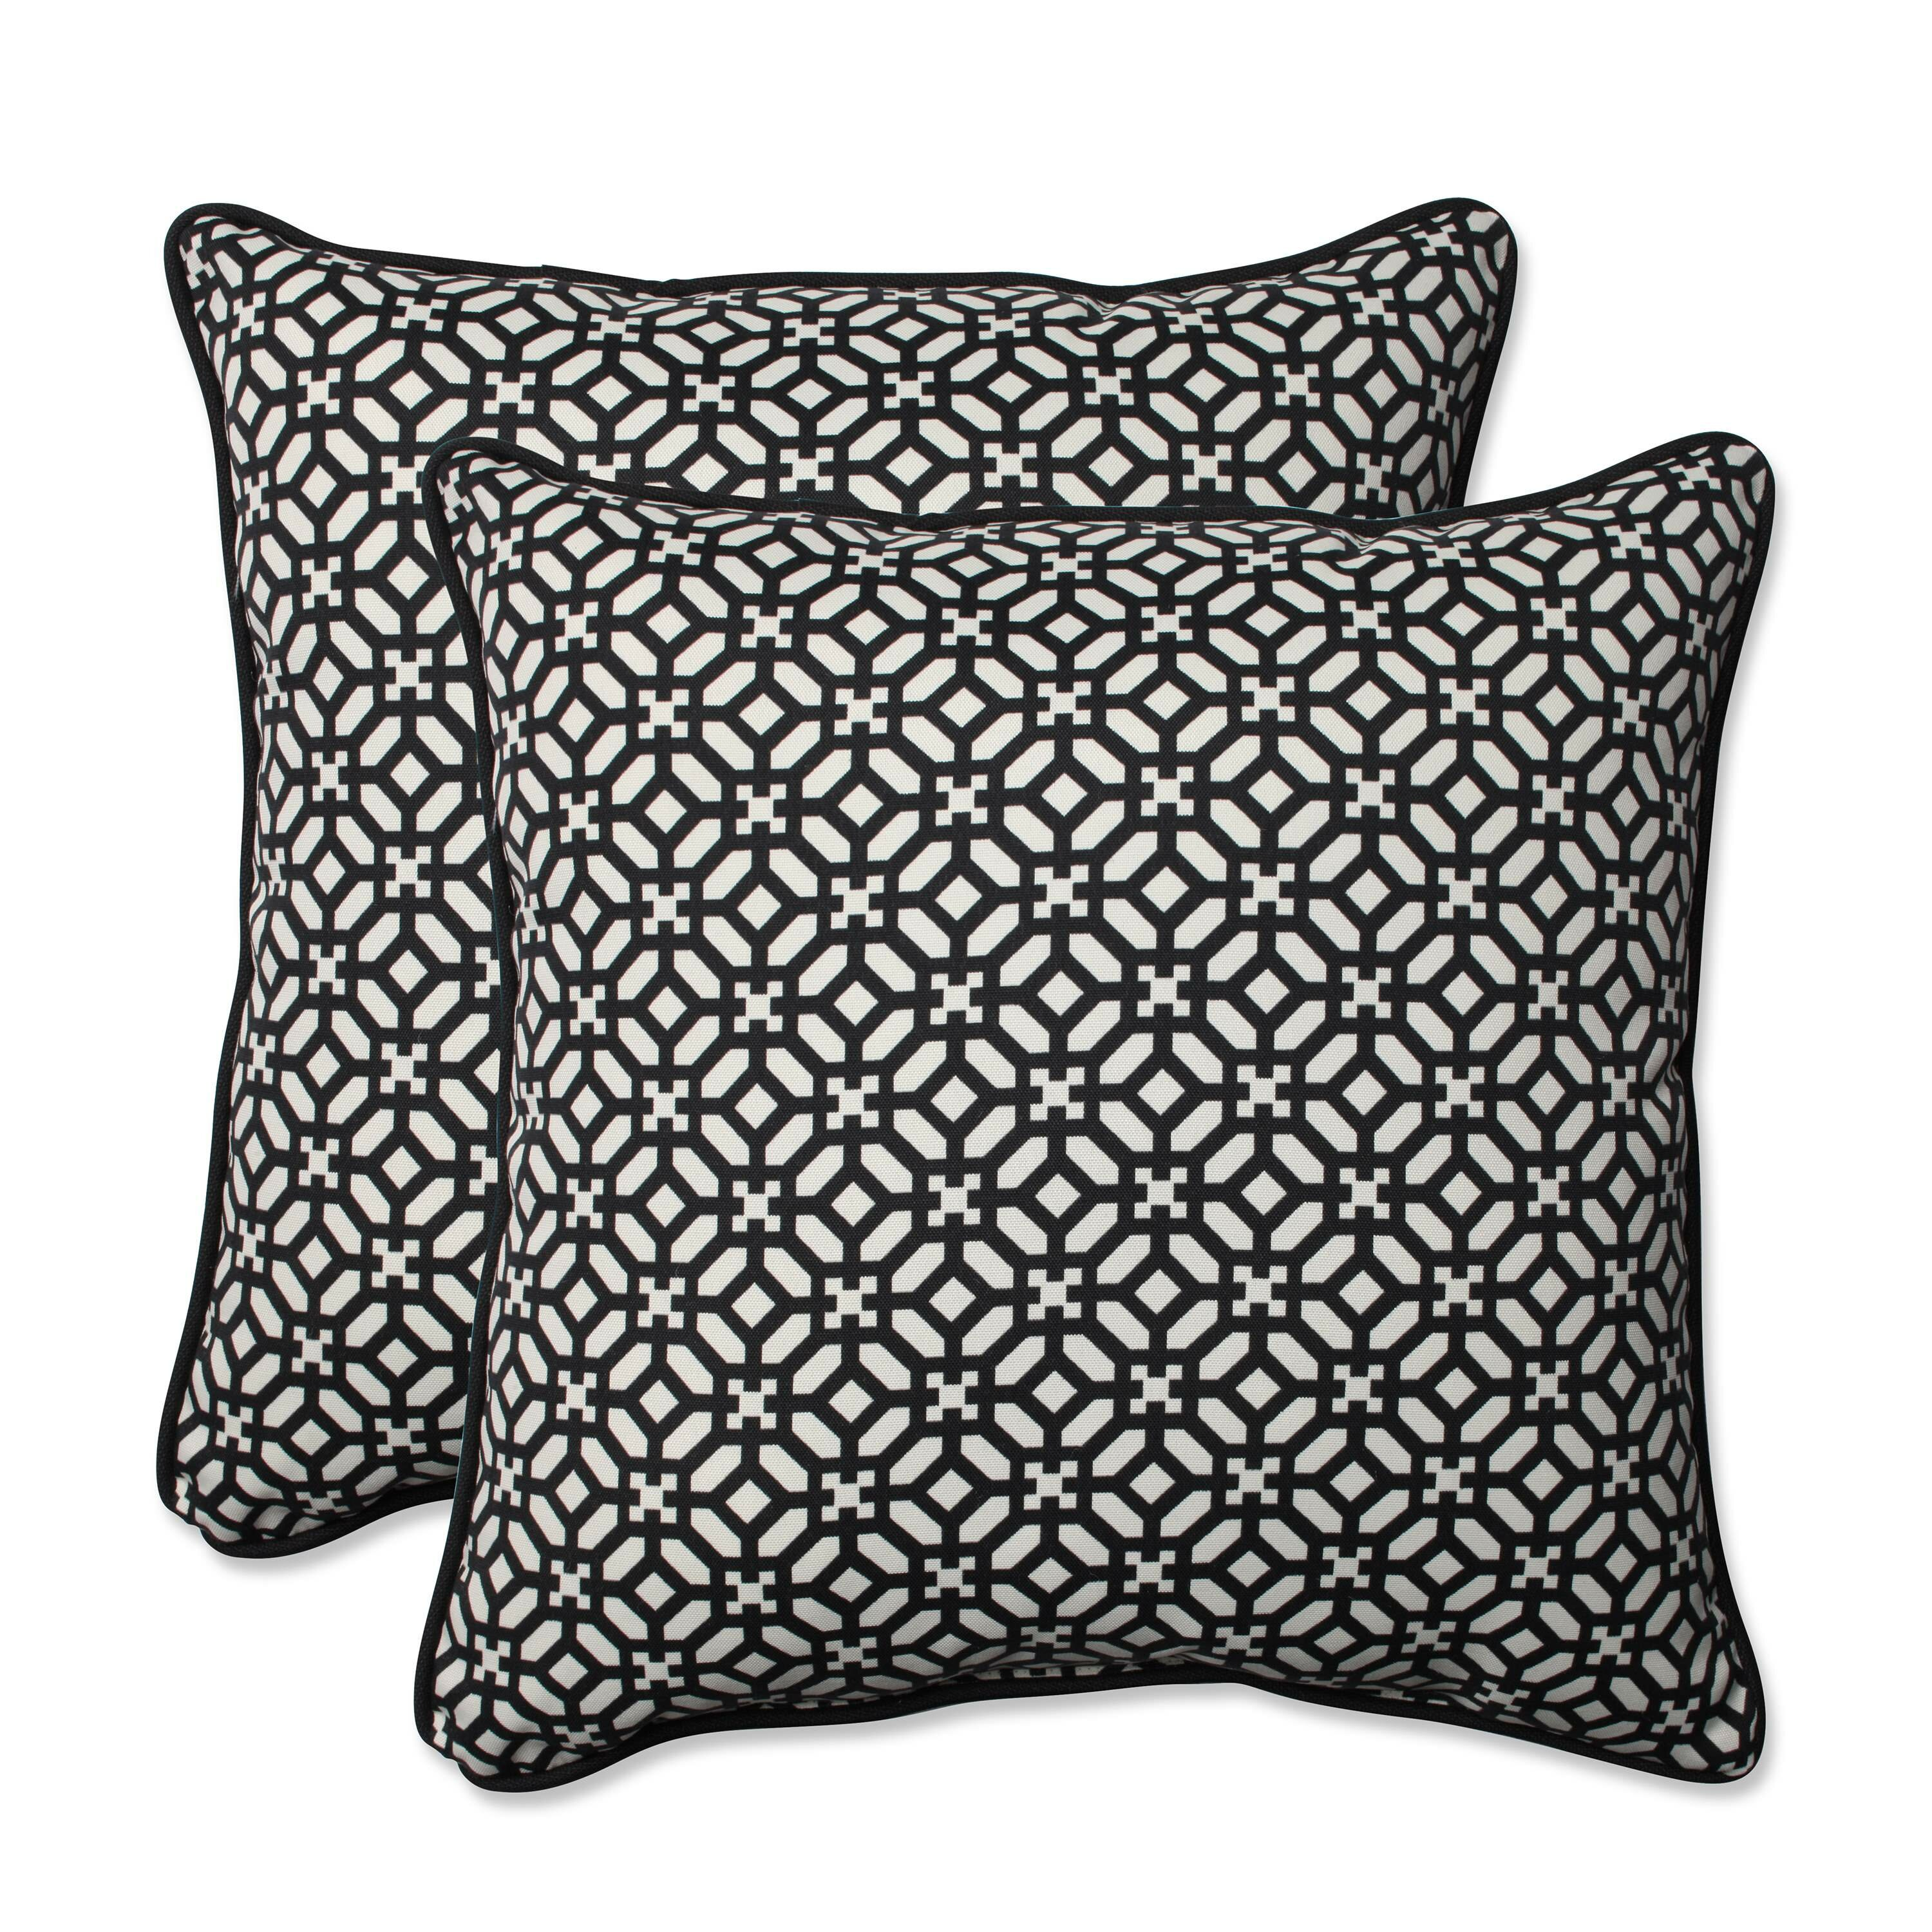 Throw Pillows In Abuja : Pillow Perfect In the Frame Indoor/Outdoor Throw Pillow & Reviews Wayfair